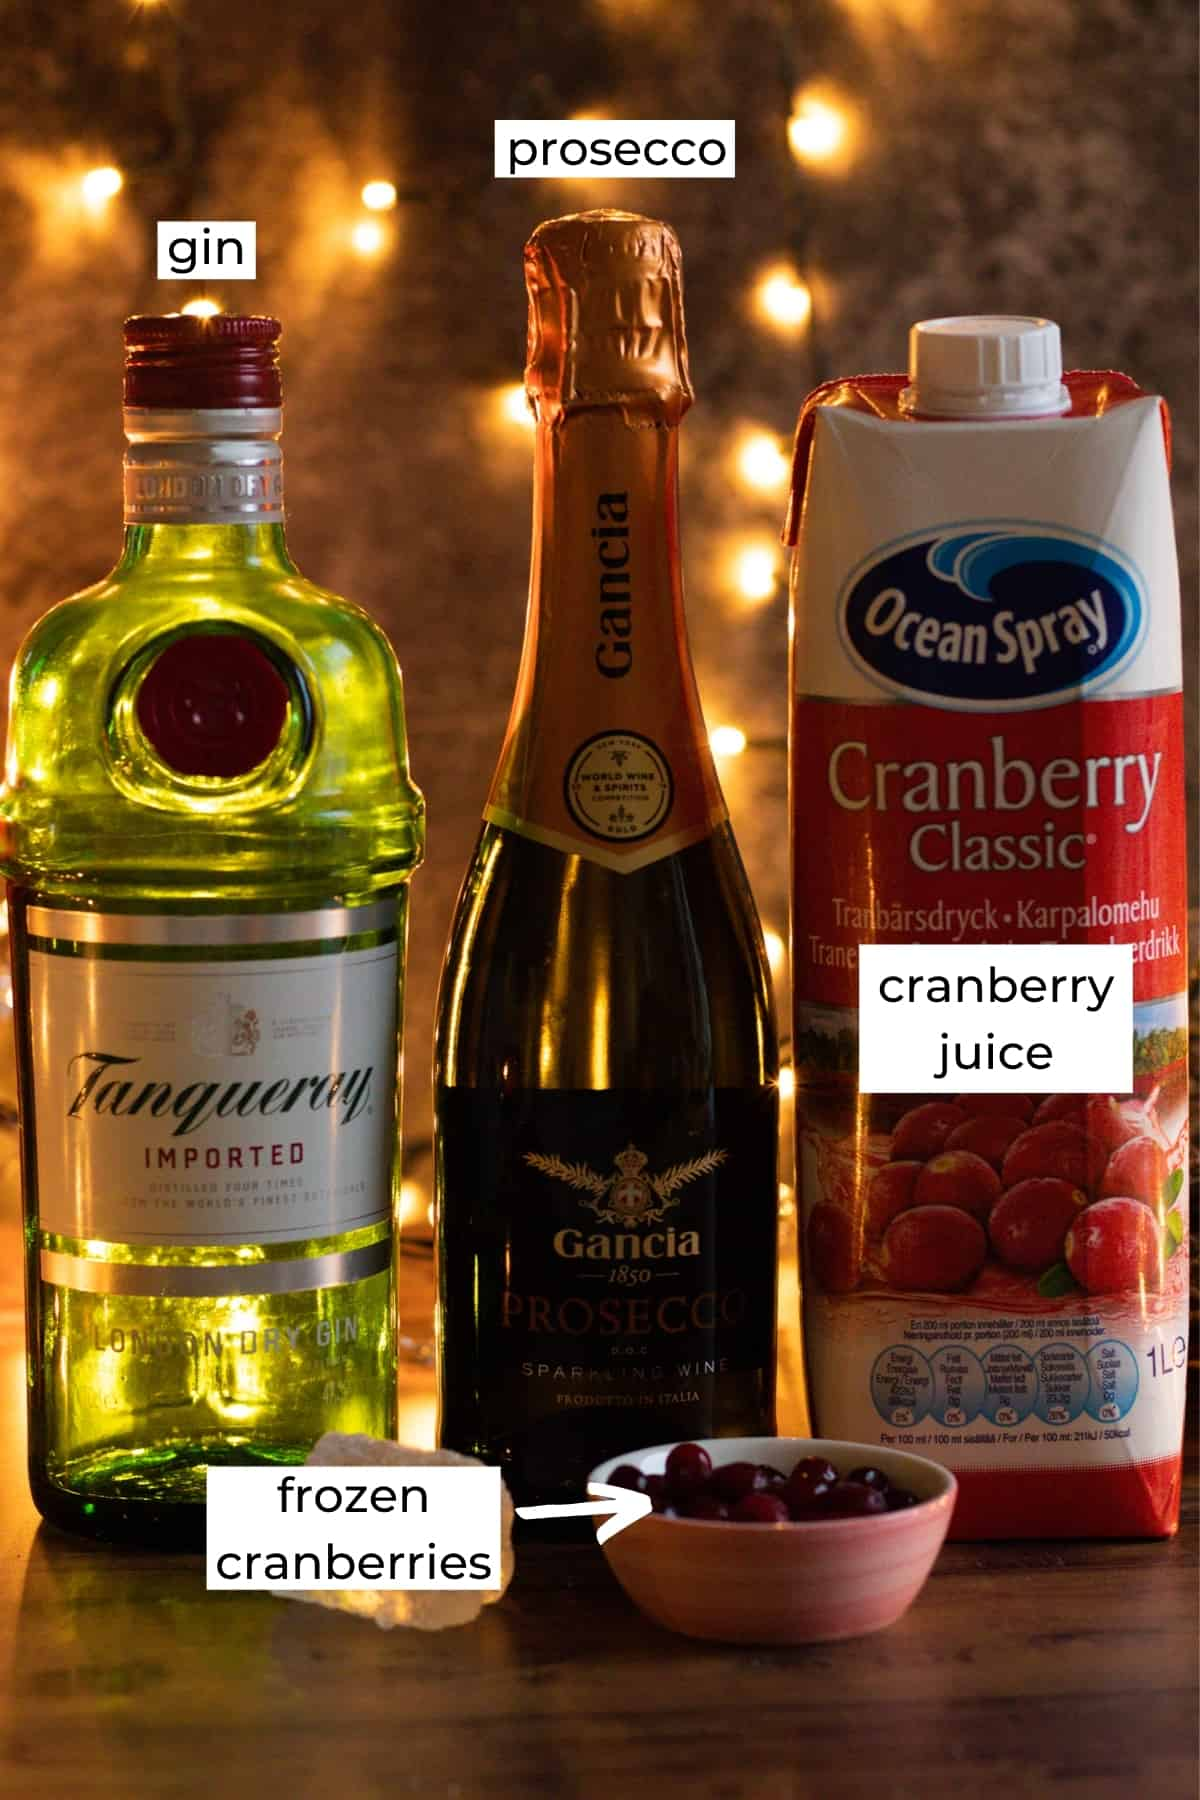 ingredients needed to make a gin prosecco cocktail